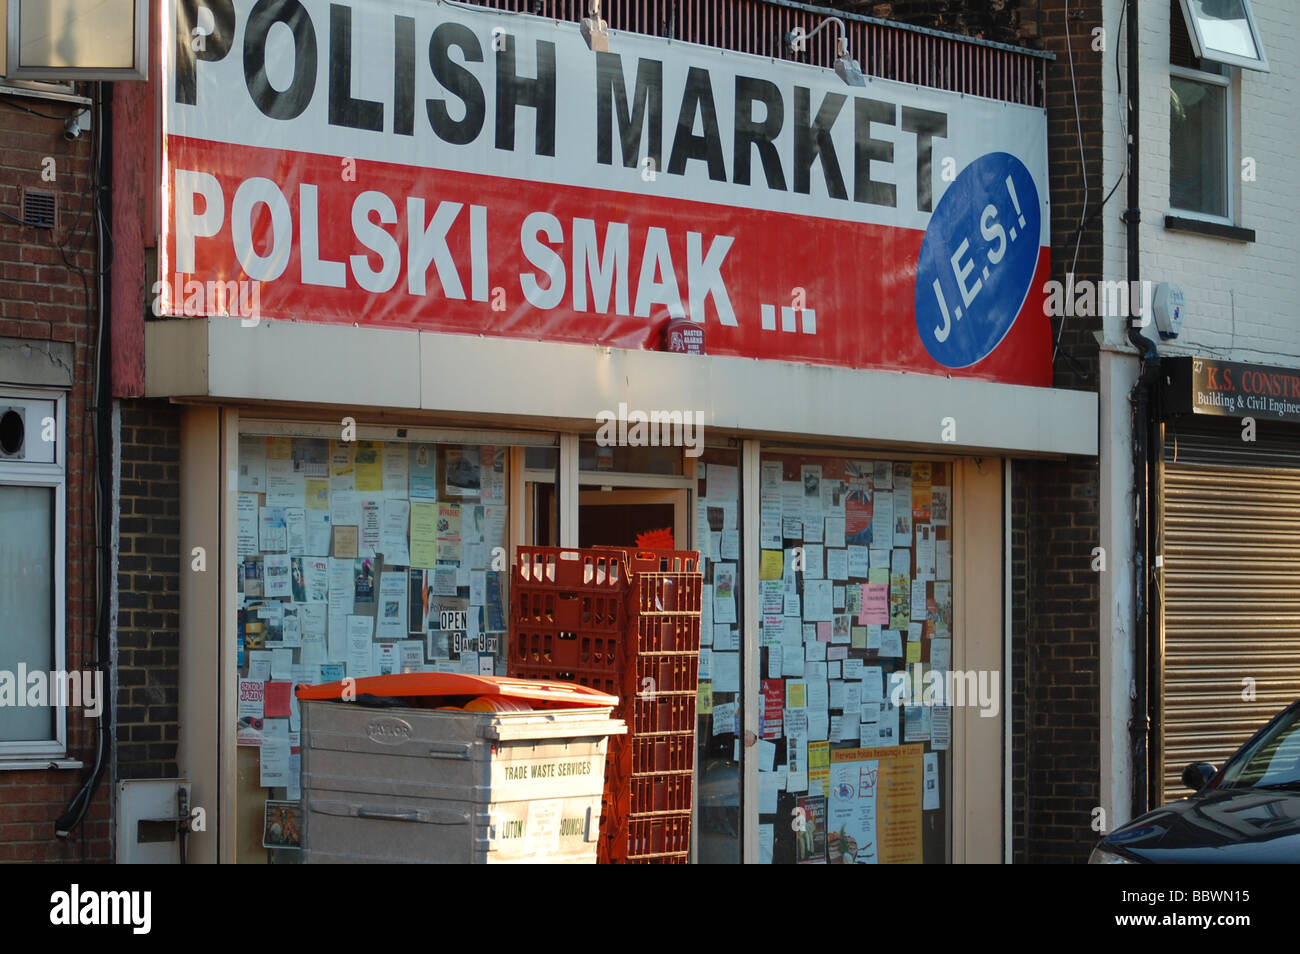 Polish shop in Luton, England. - Stock Image